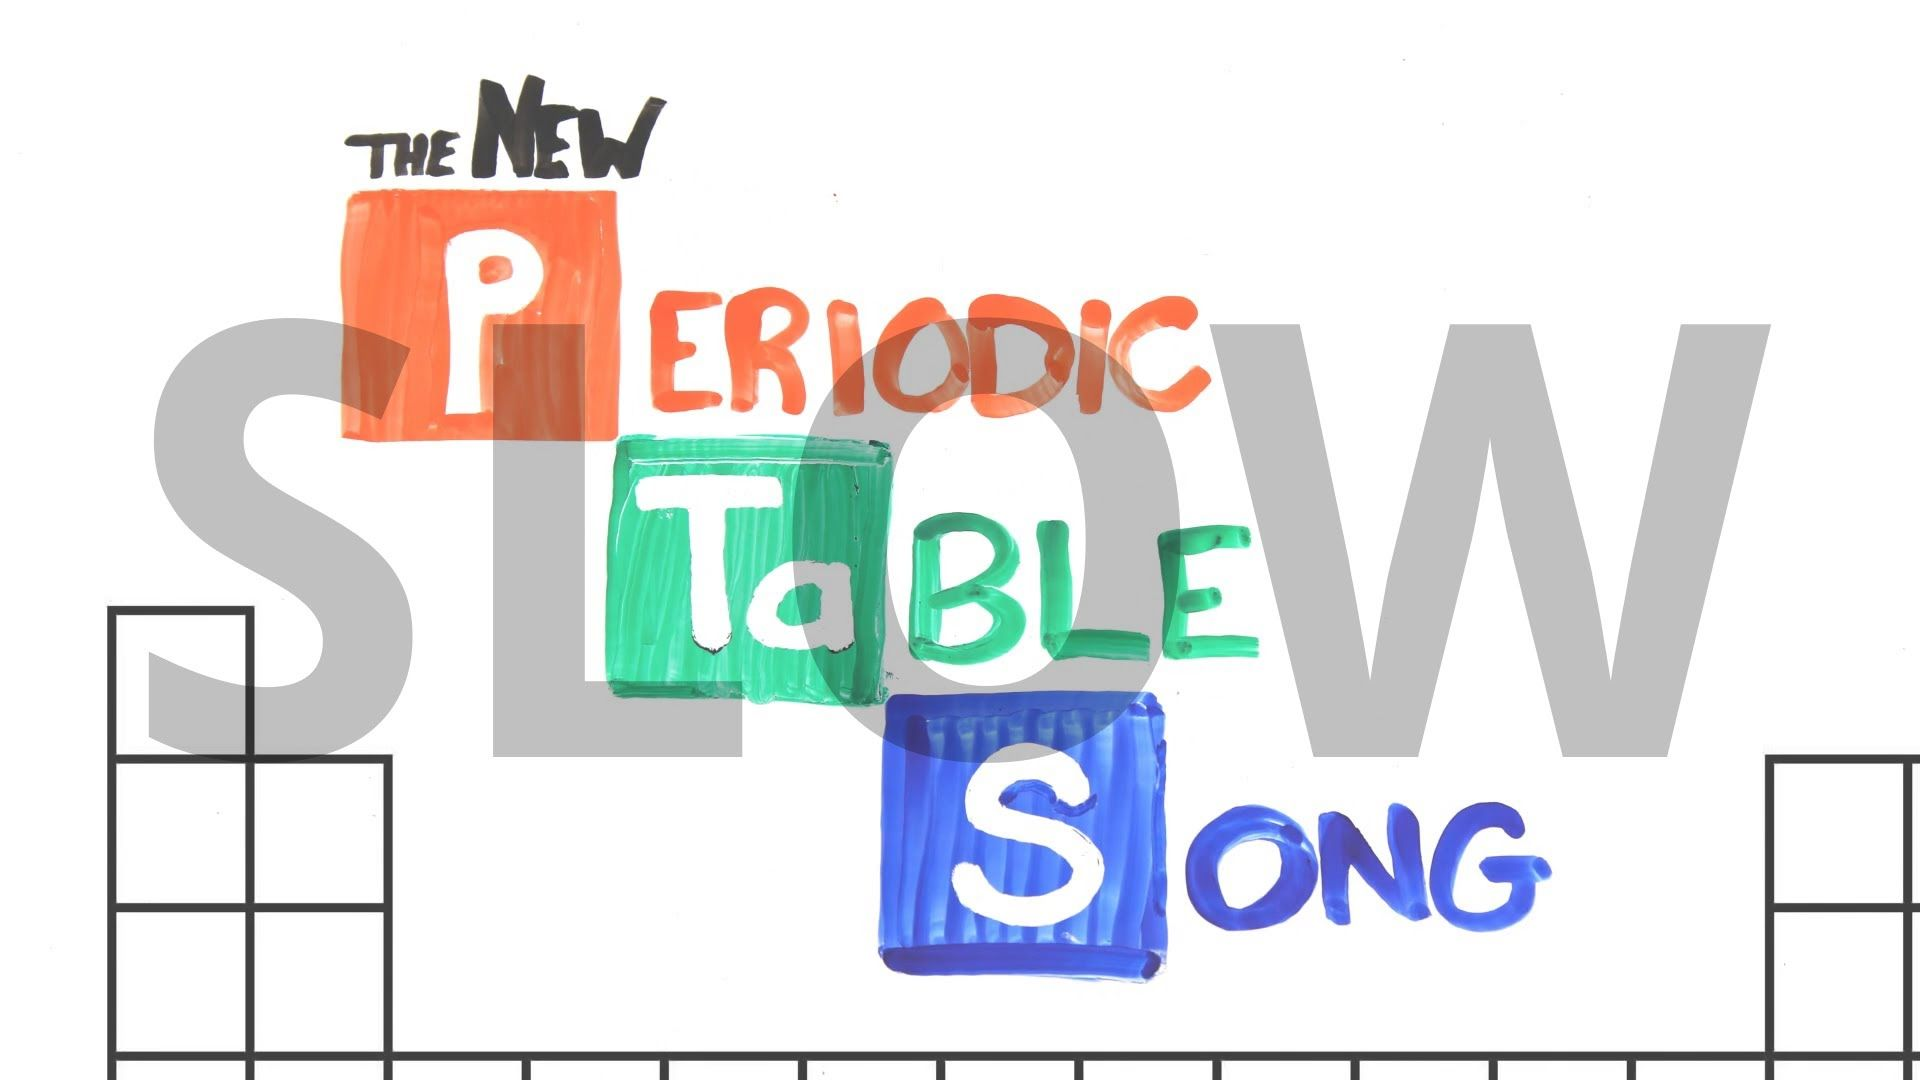 Slow the new periodic table song in order asapscience 2013 slow the new periodic table song in order asapscience urtaz Gallery